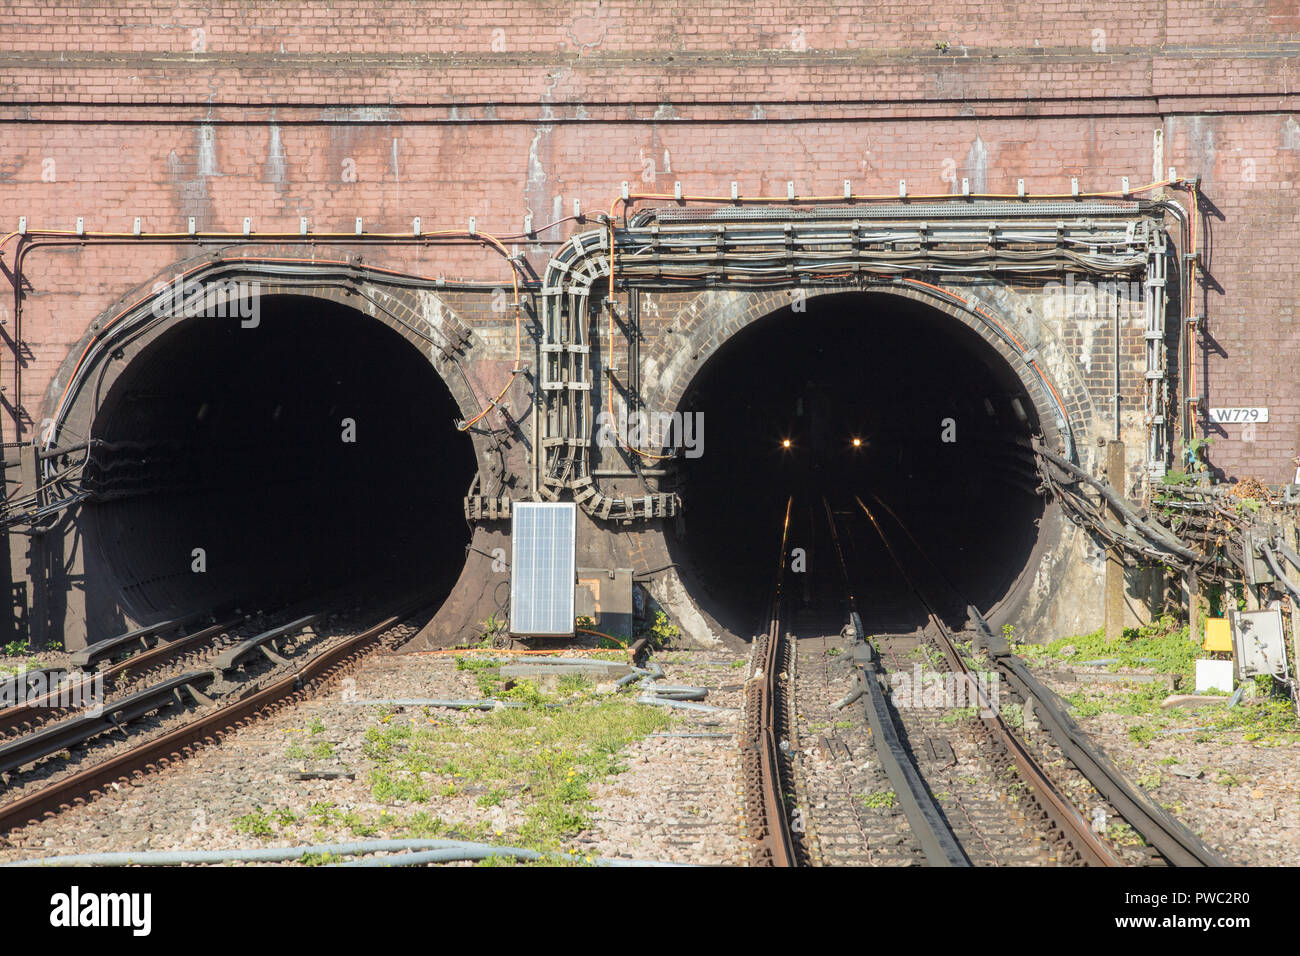 London underground tube train emerging from a tunnel on the northern line station Hendon, in the north west, towards the centre and south of the city. - Stock Image